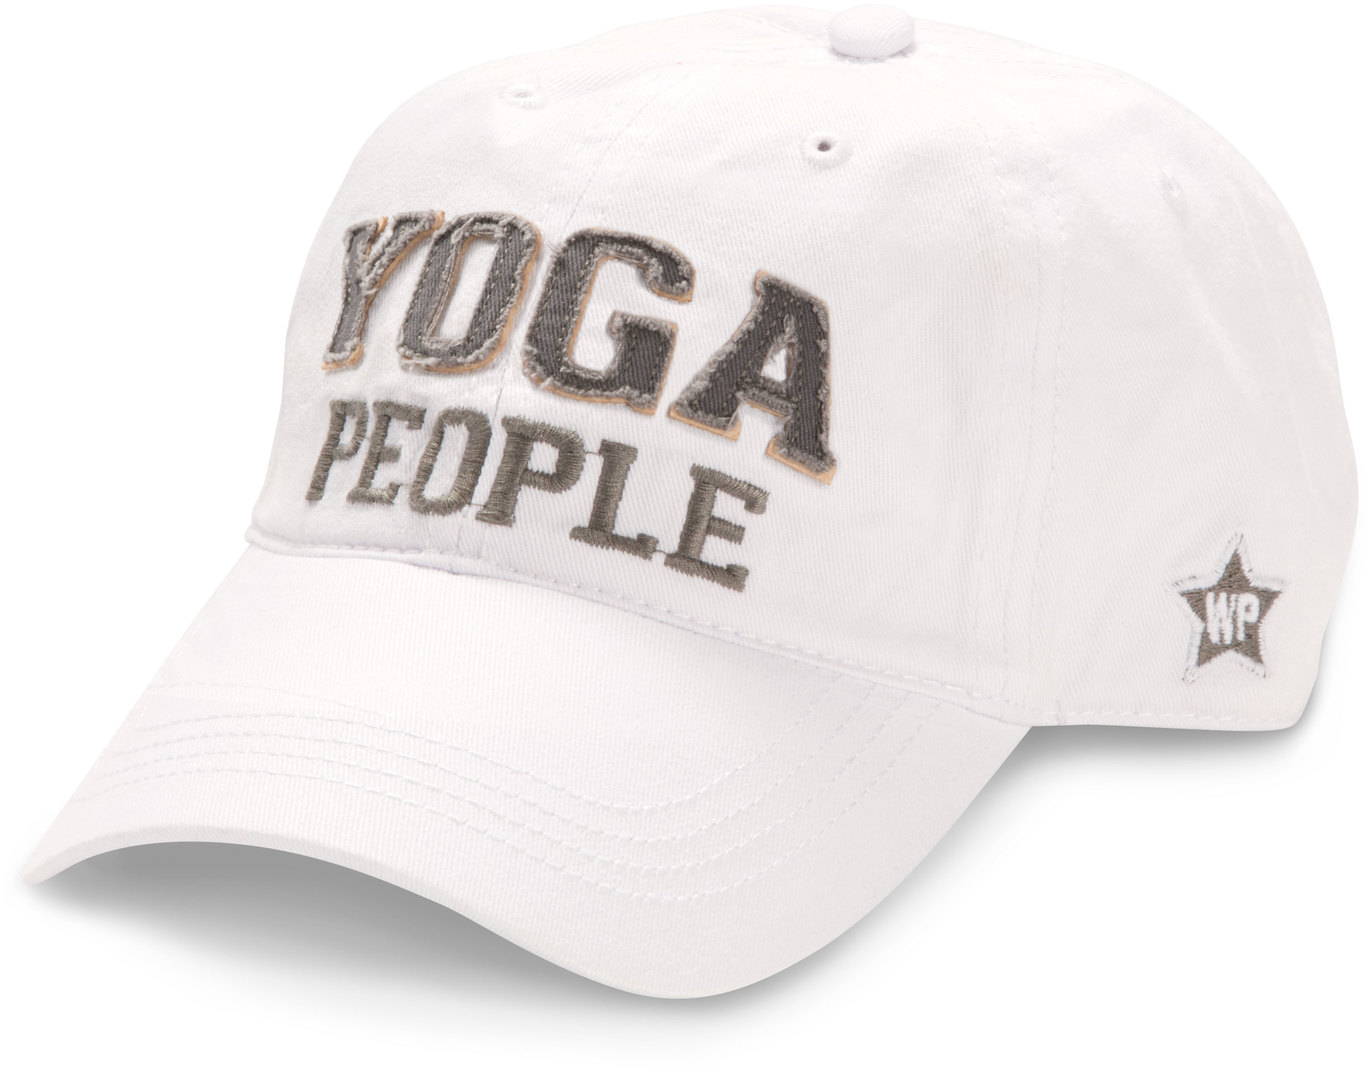 Yoga People by We People - Yoga People - White Adjustable Hat